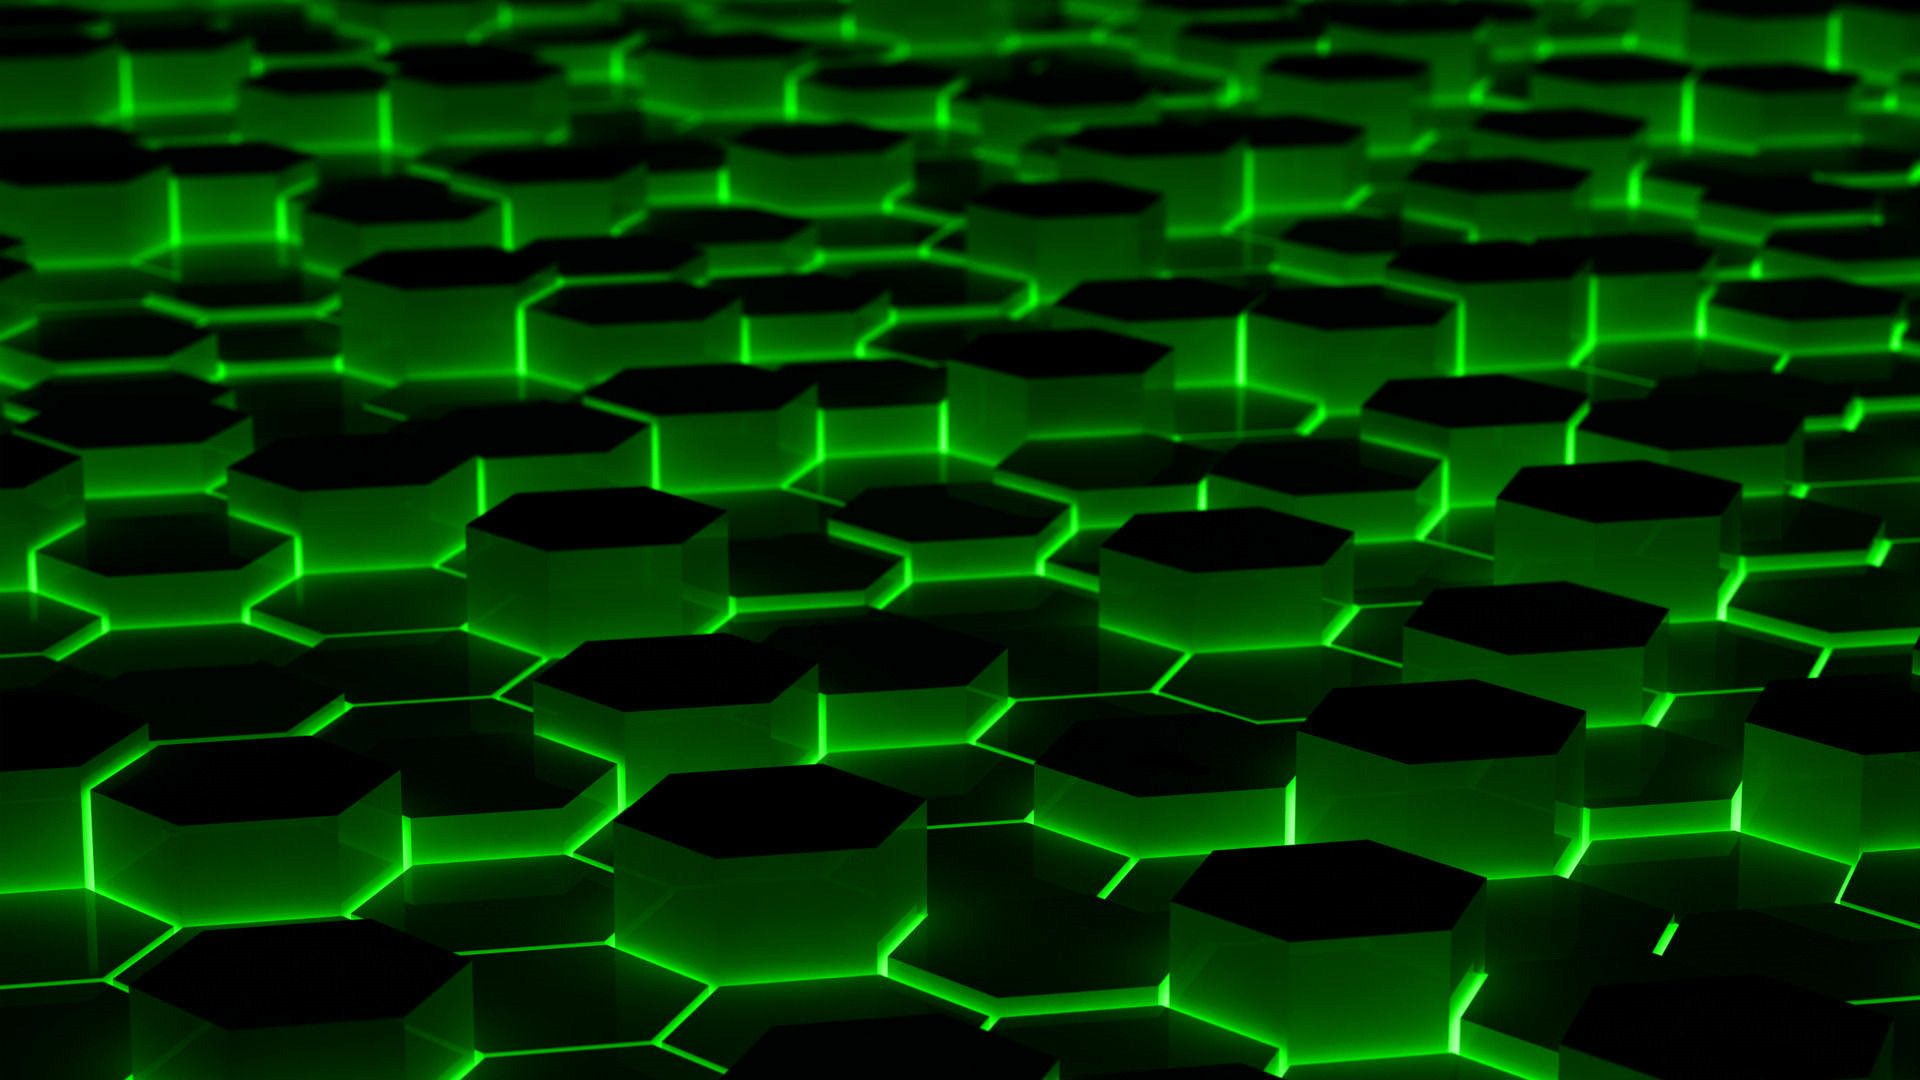 4k Green Wallpapers Top Free 4k Green Backgrounds